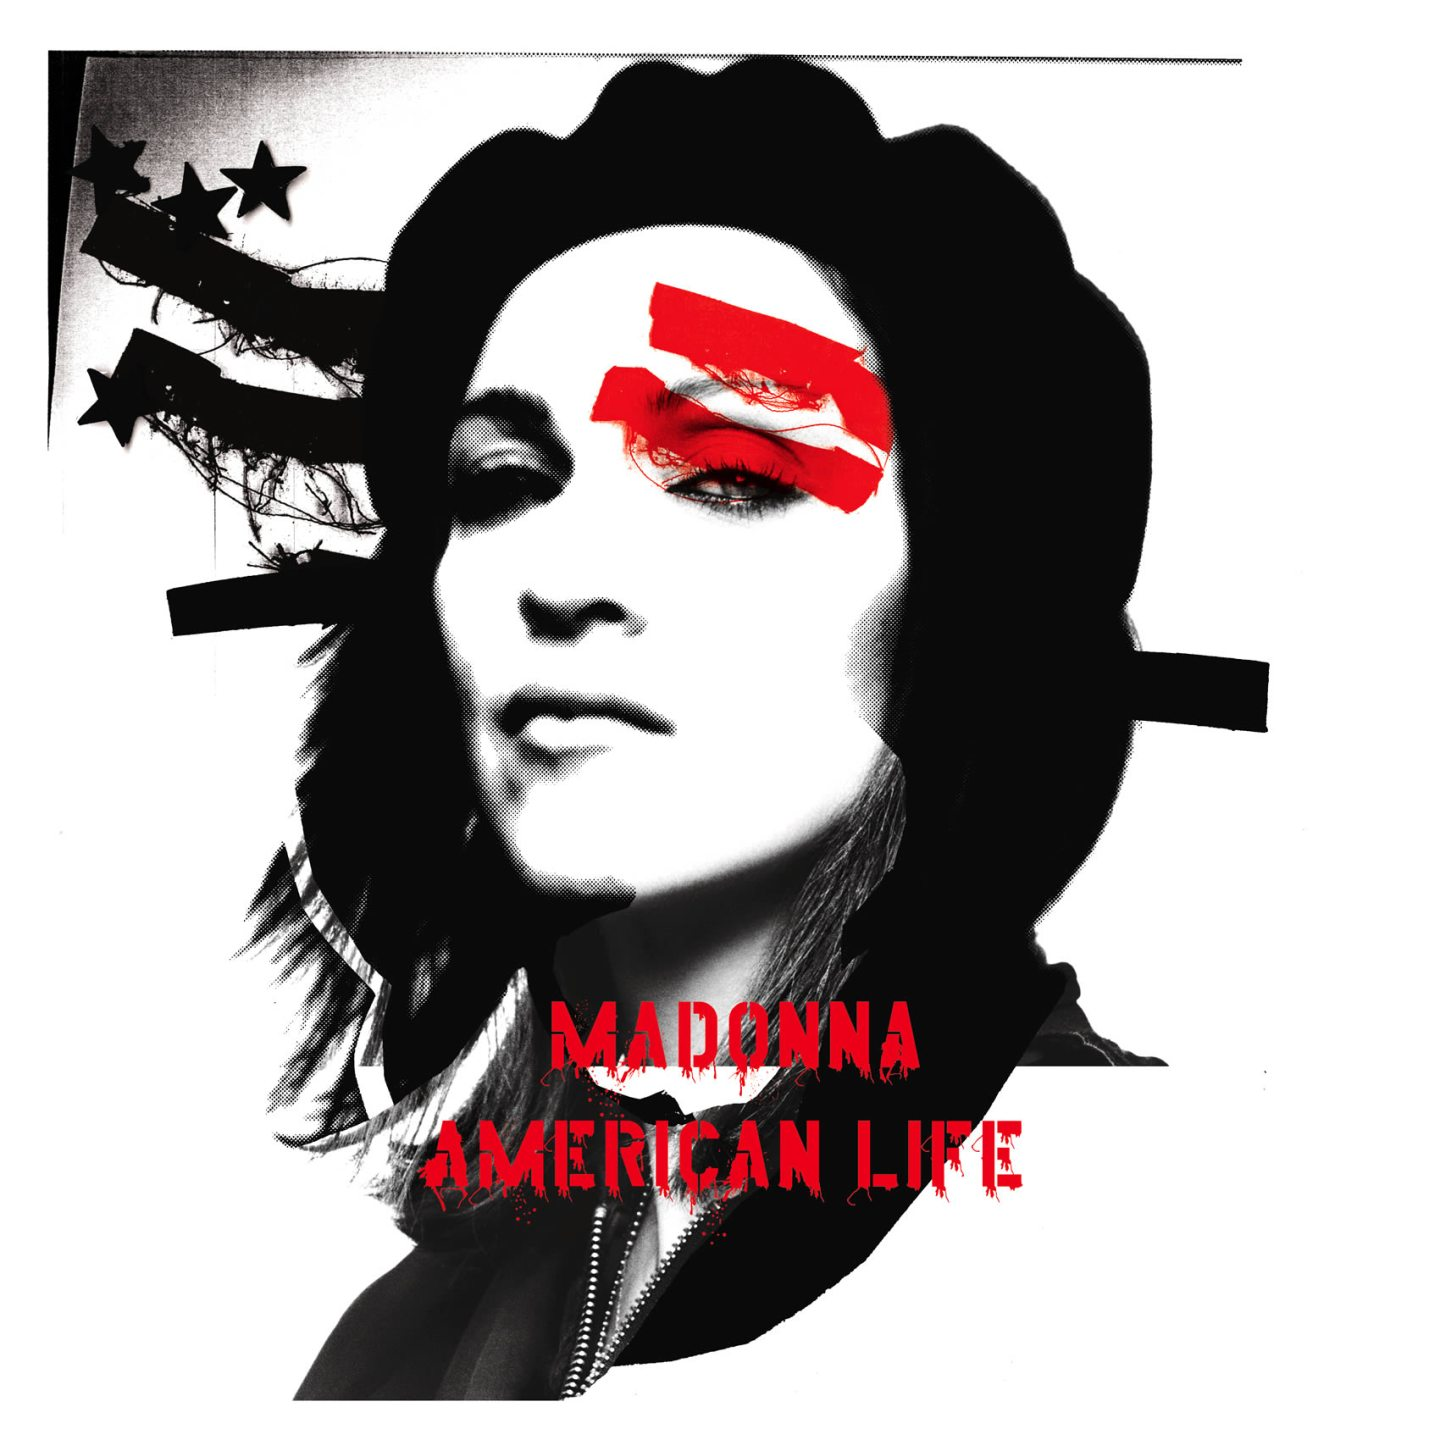 REVIEW: 'AMERICAN LIFE' – MADONNA